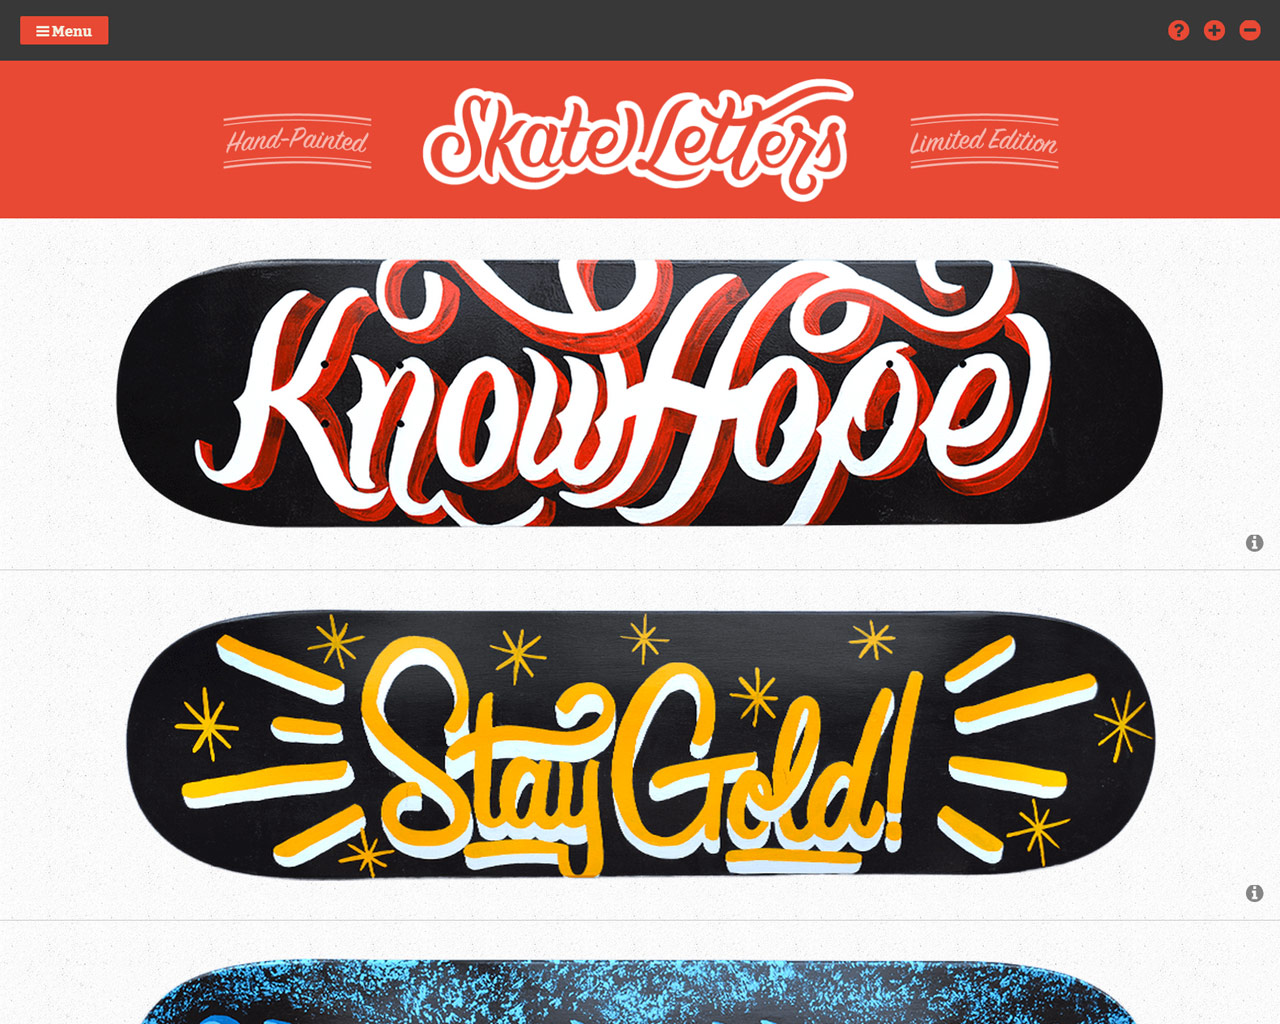 Skate Letters Website Screenshot